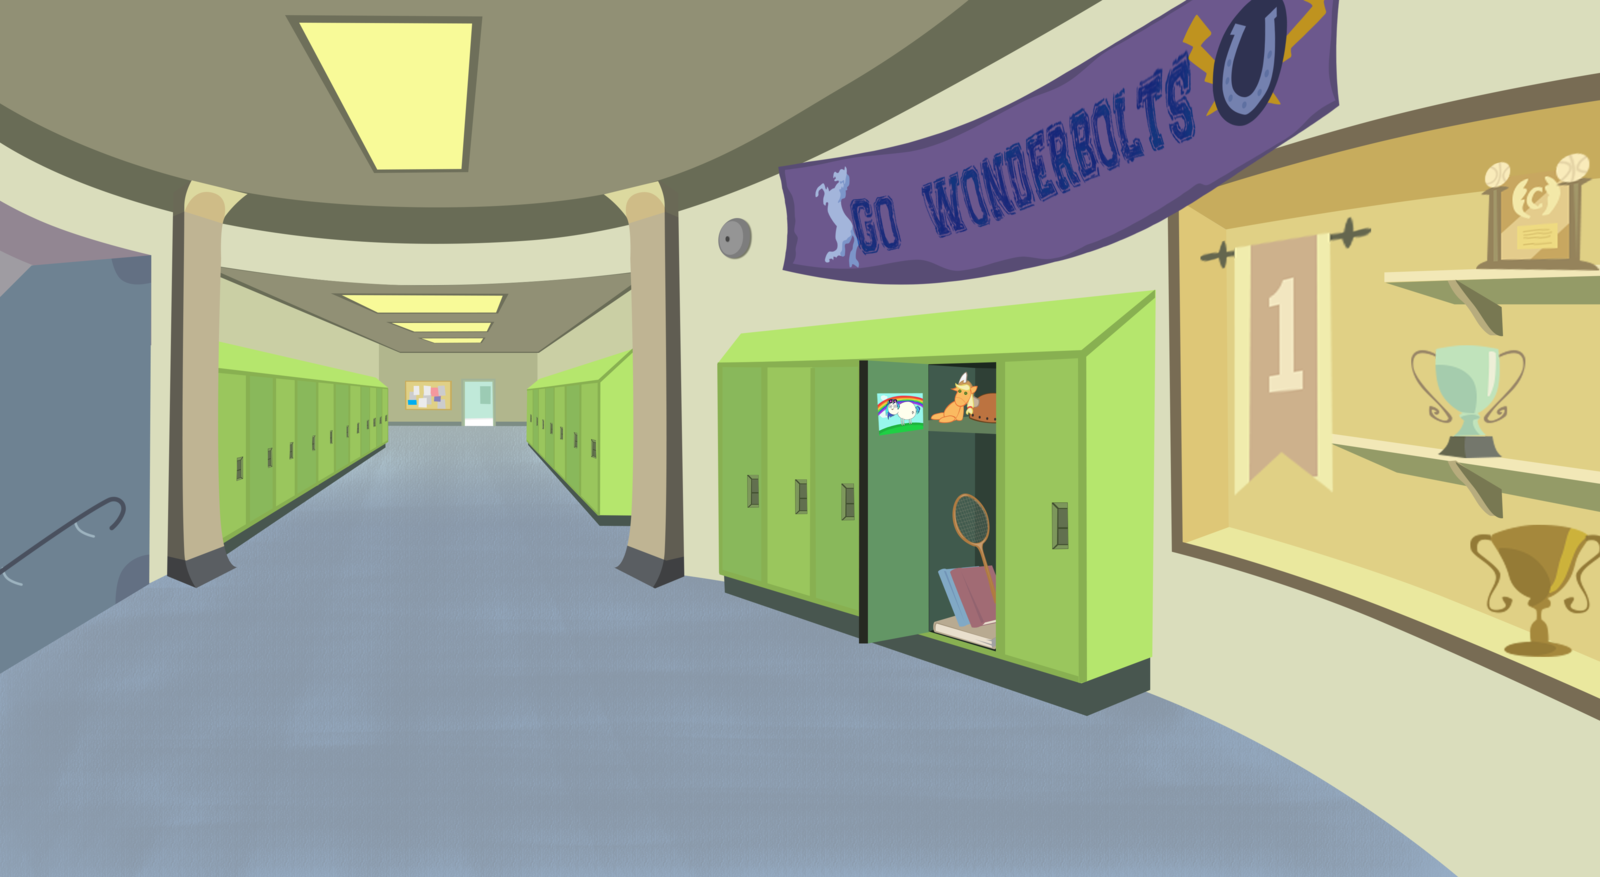 Free Cliparts School Hallway, Download Free Clip Art, Free.